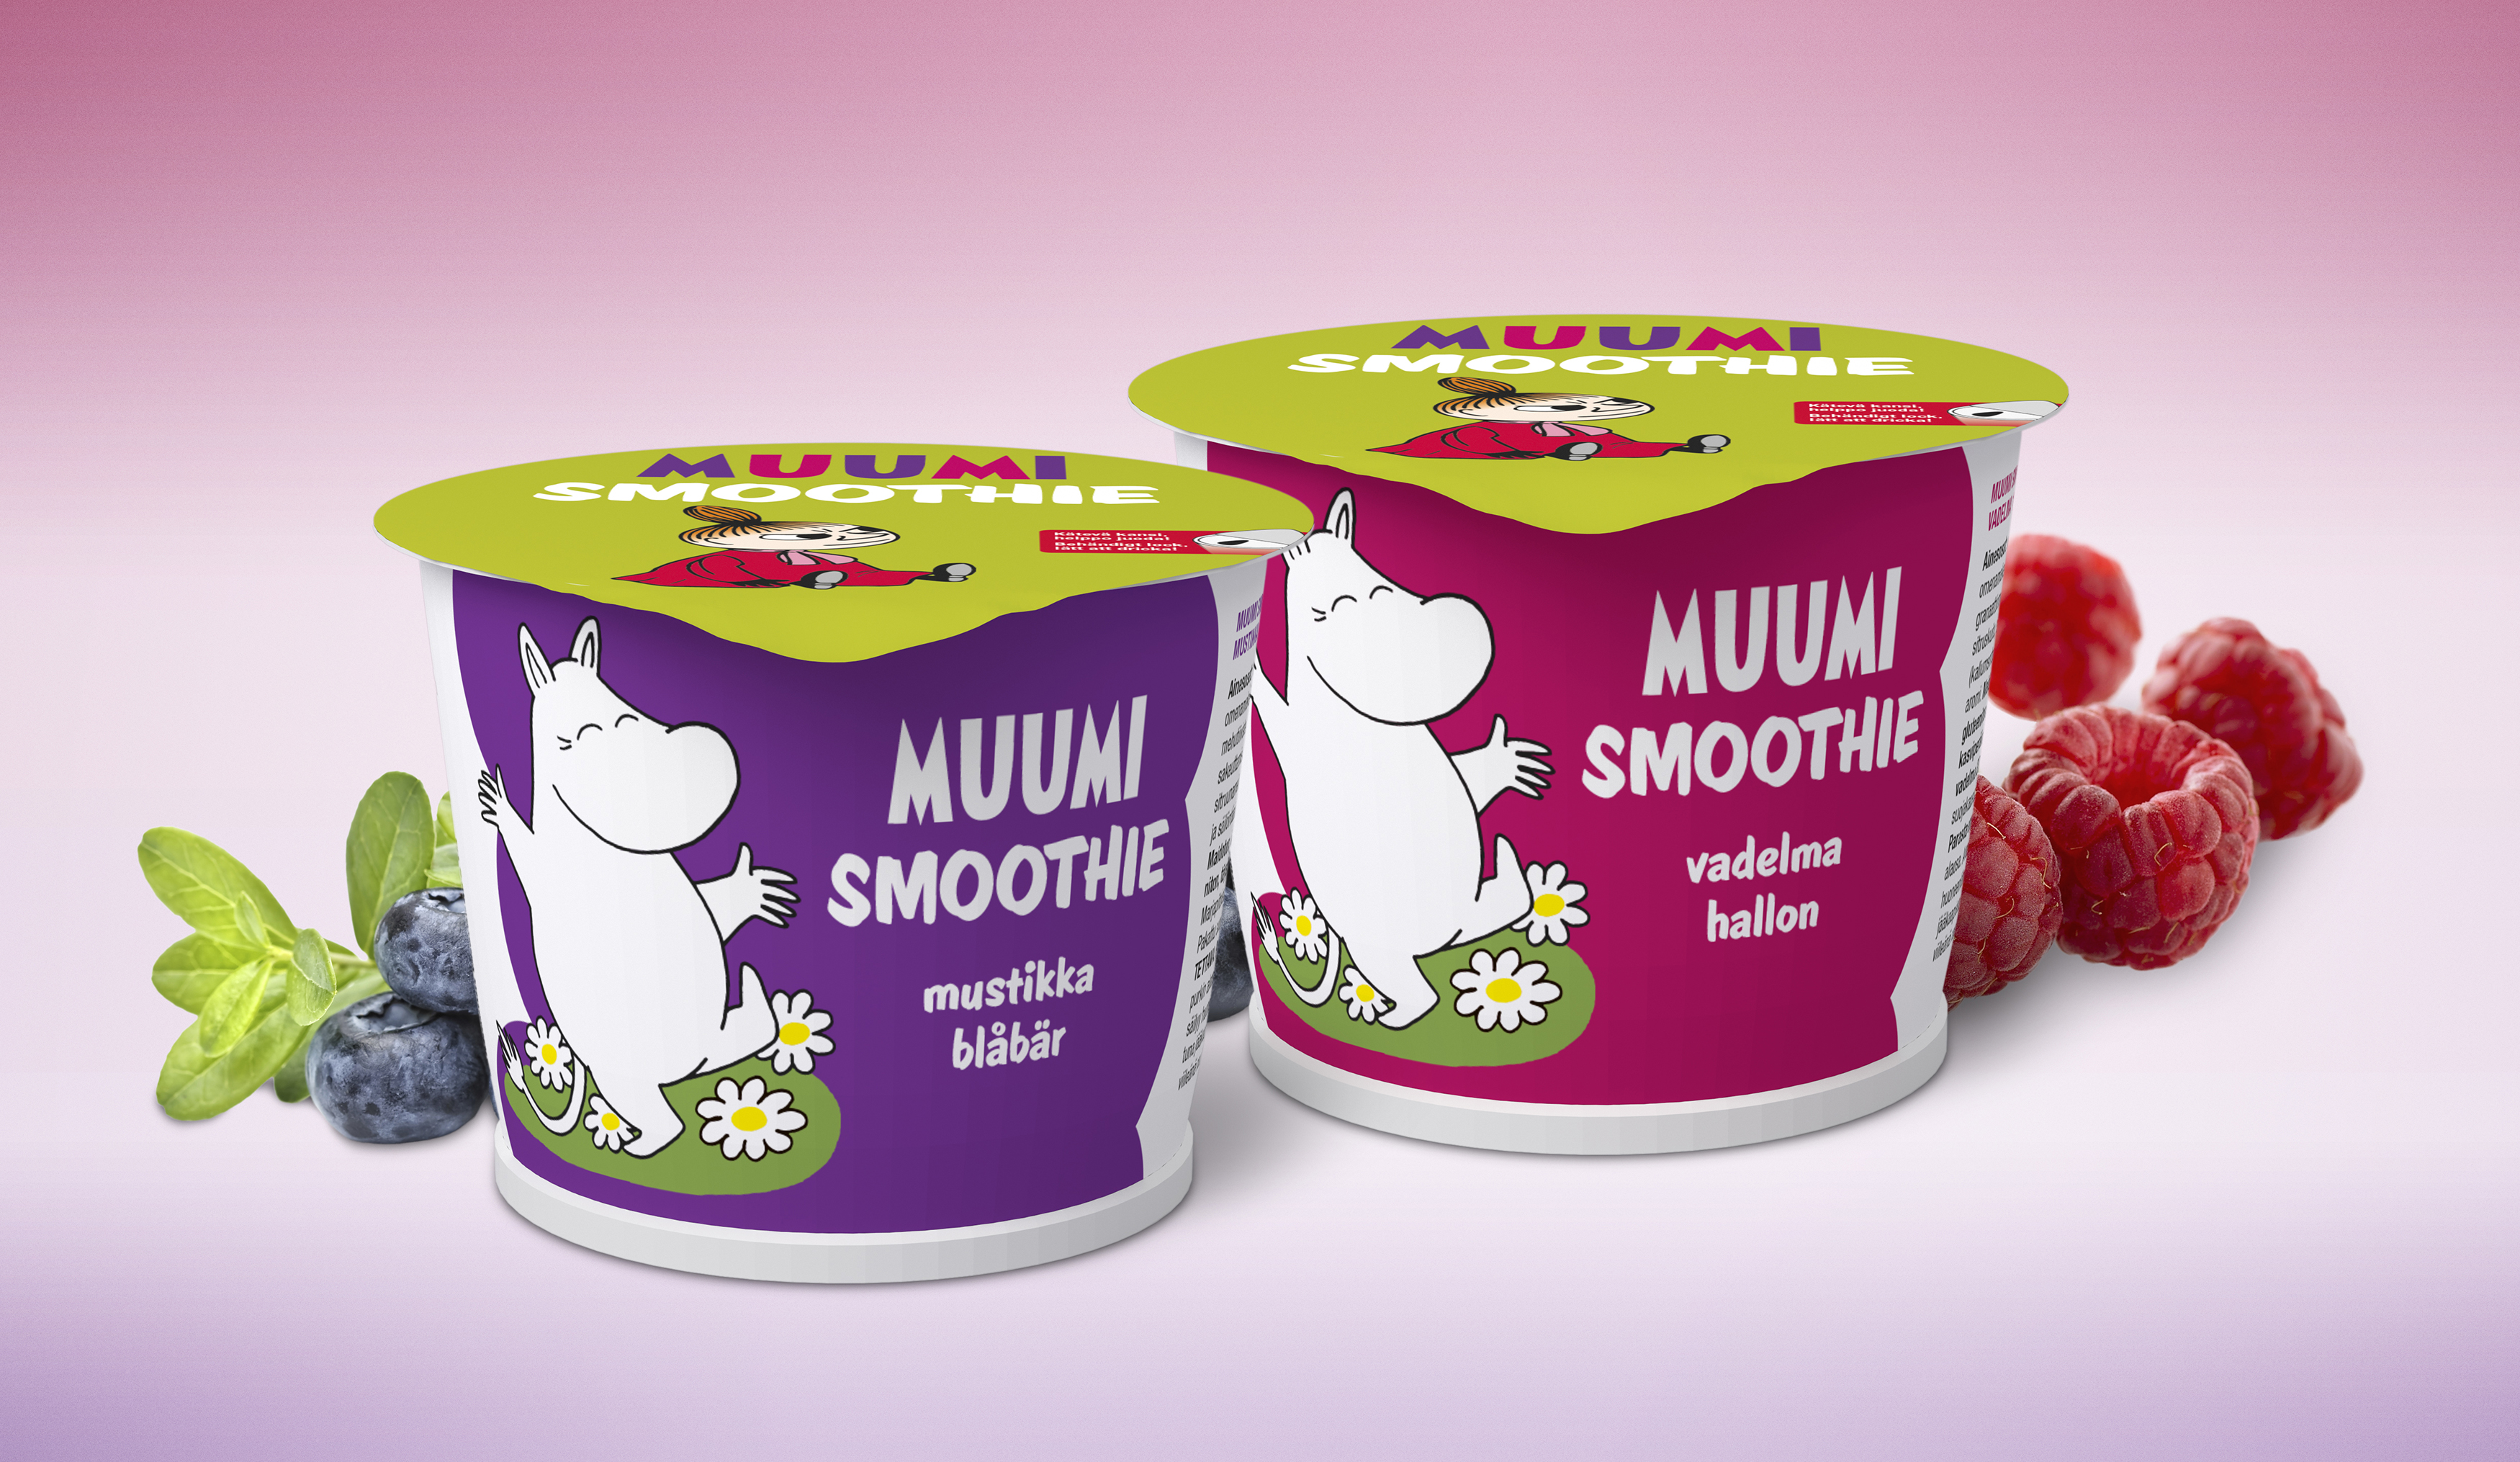 Muumi-smoothiet